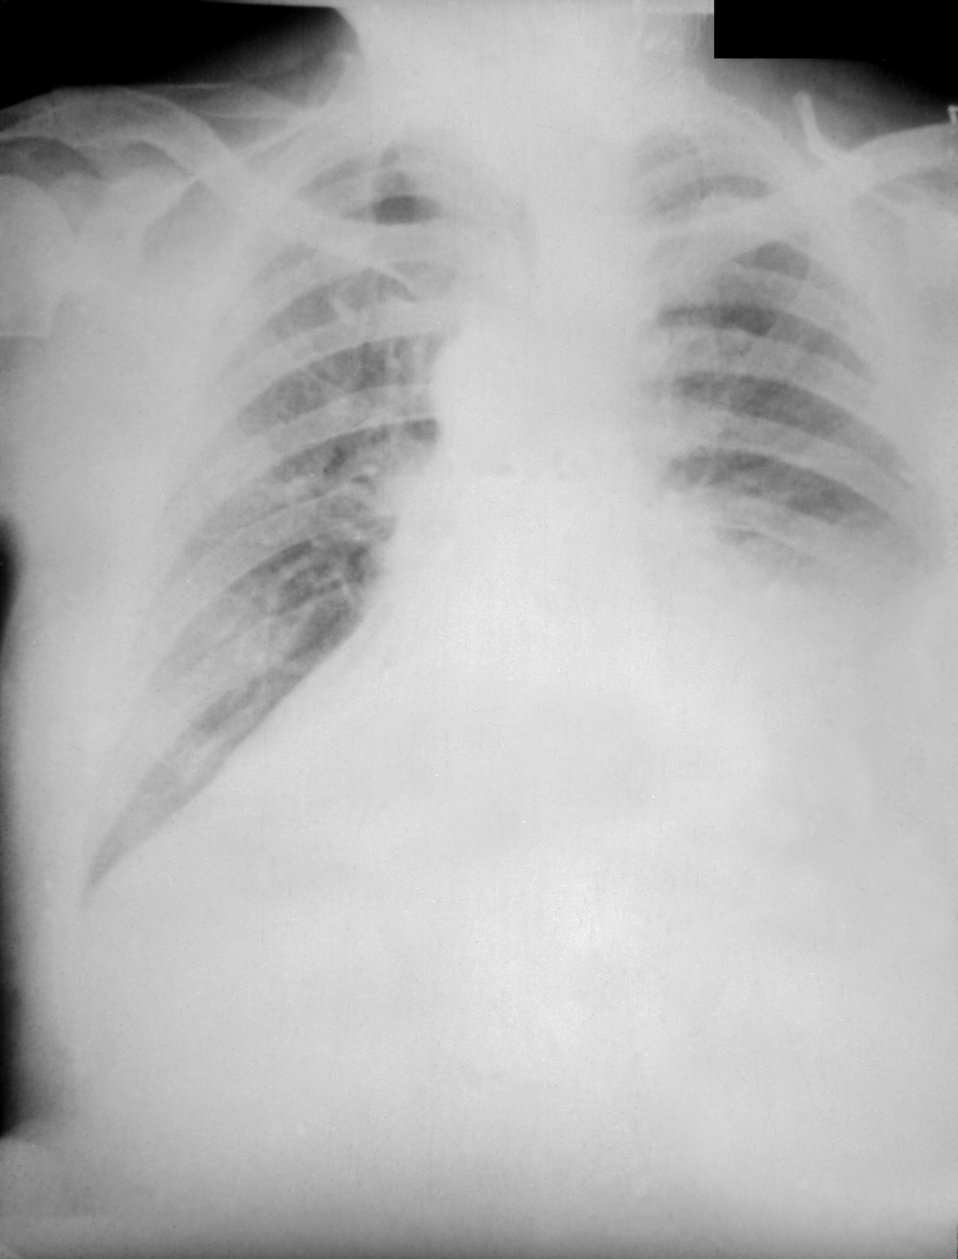 PA chest radiograph of anthrax, 4th day of illness.